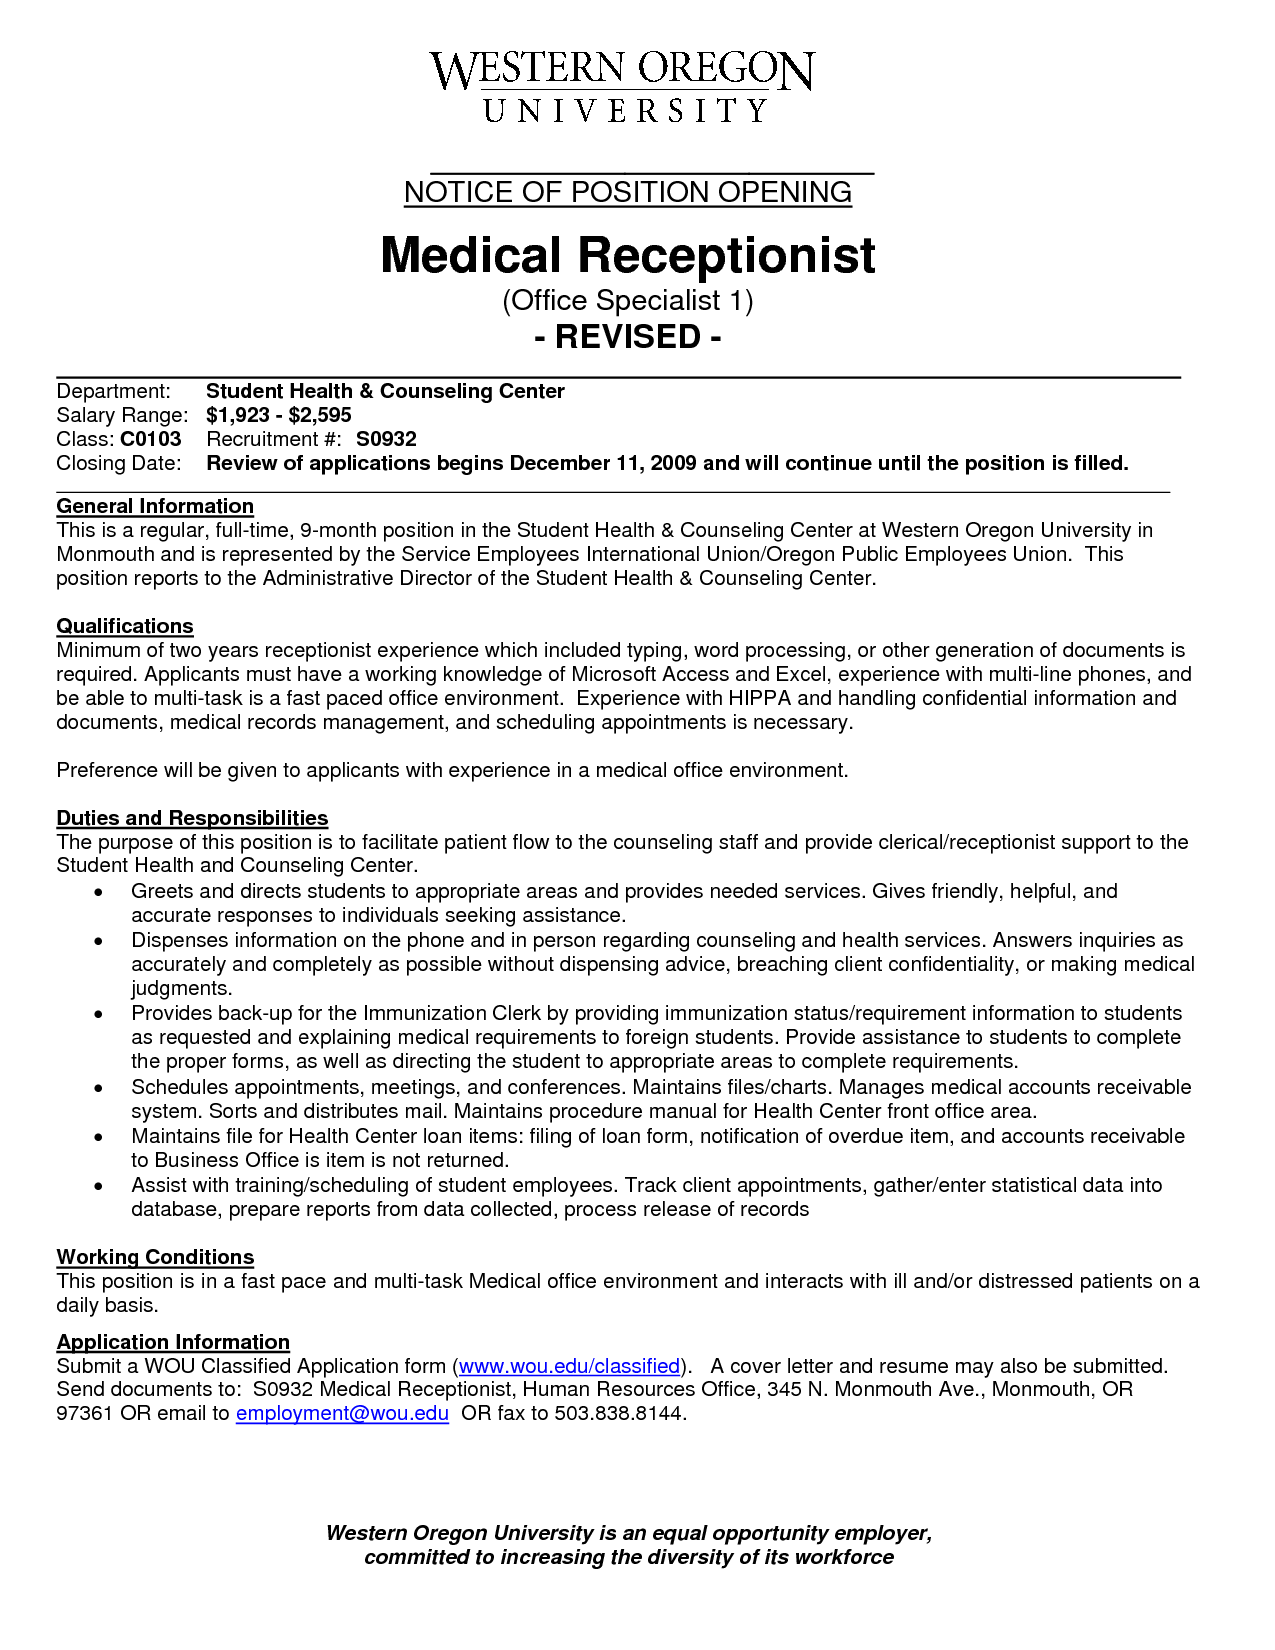 Cashier Description For Resume Medical Receptionist Resume With No Experience  Httpwww